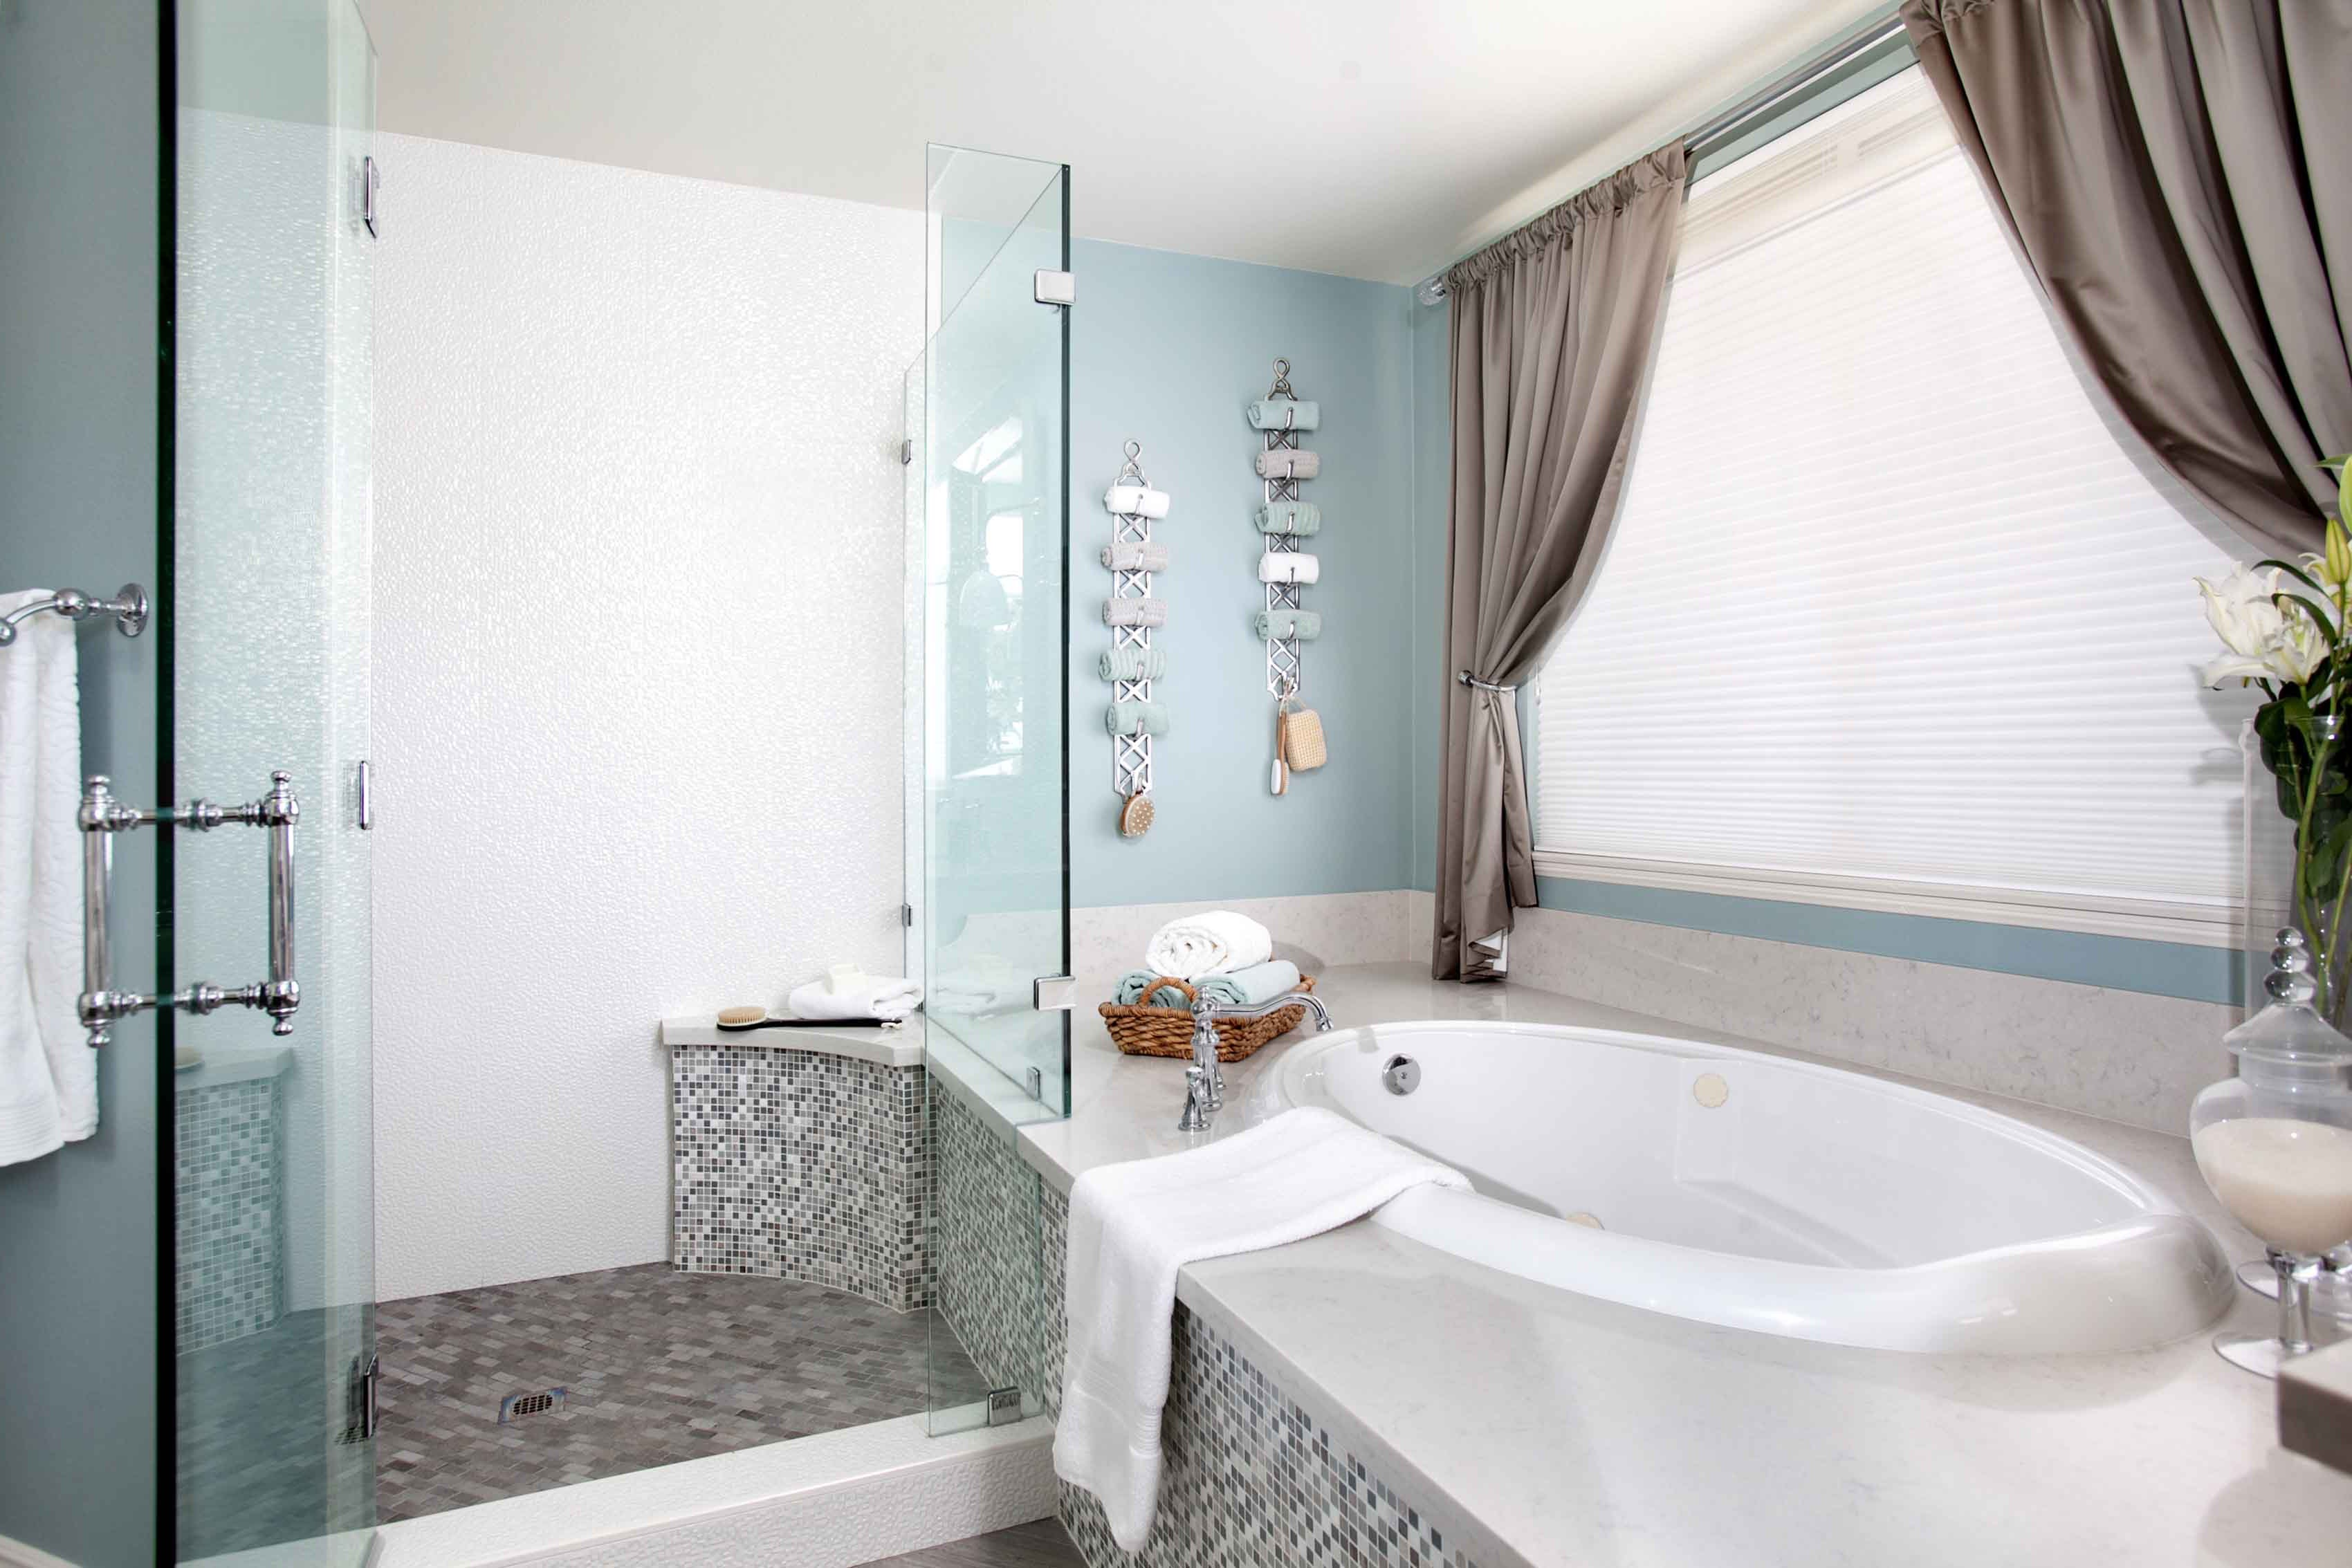 Luxe Master Bathroom Boasts Oval Tub And Walk In Shower Design Combo (View 8 of 19)